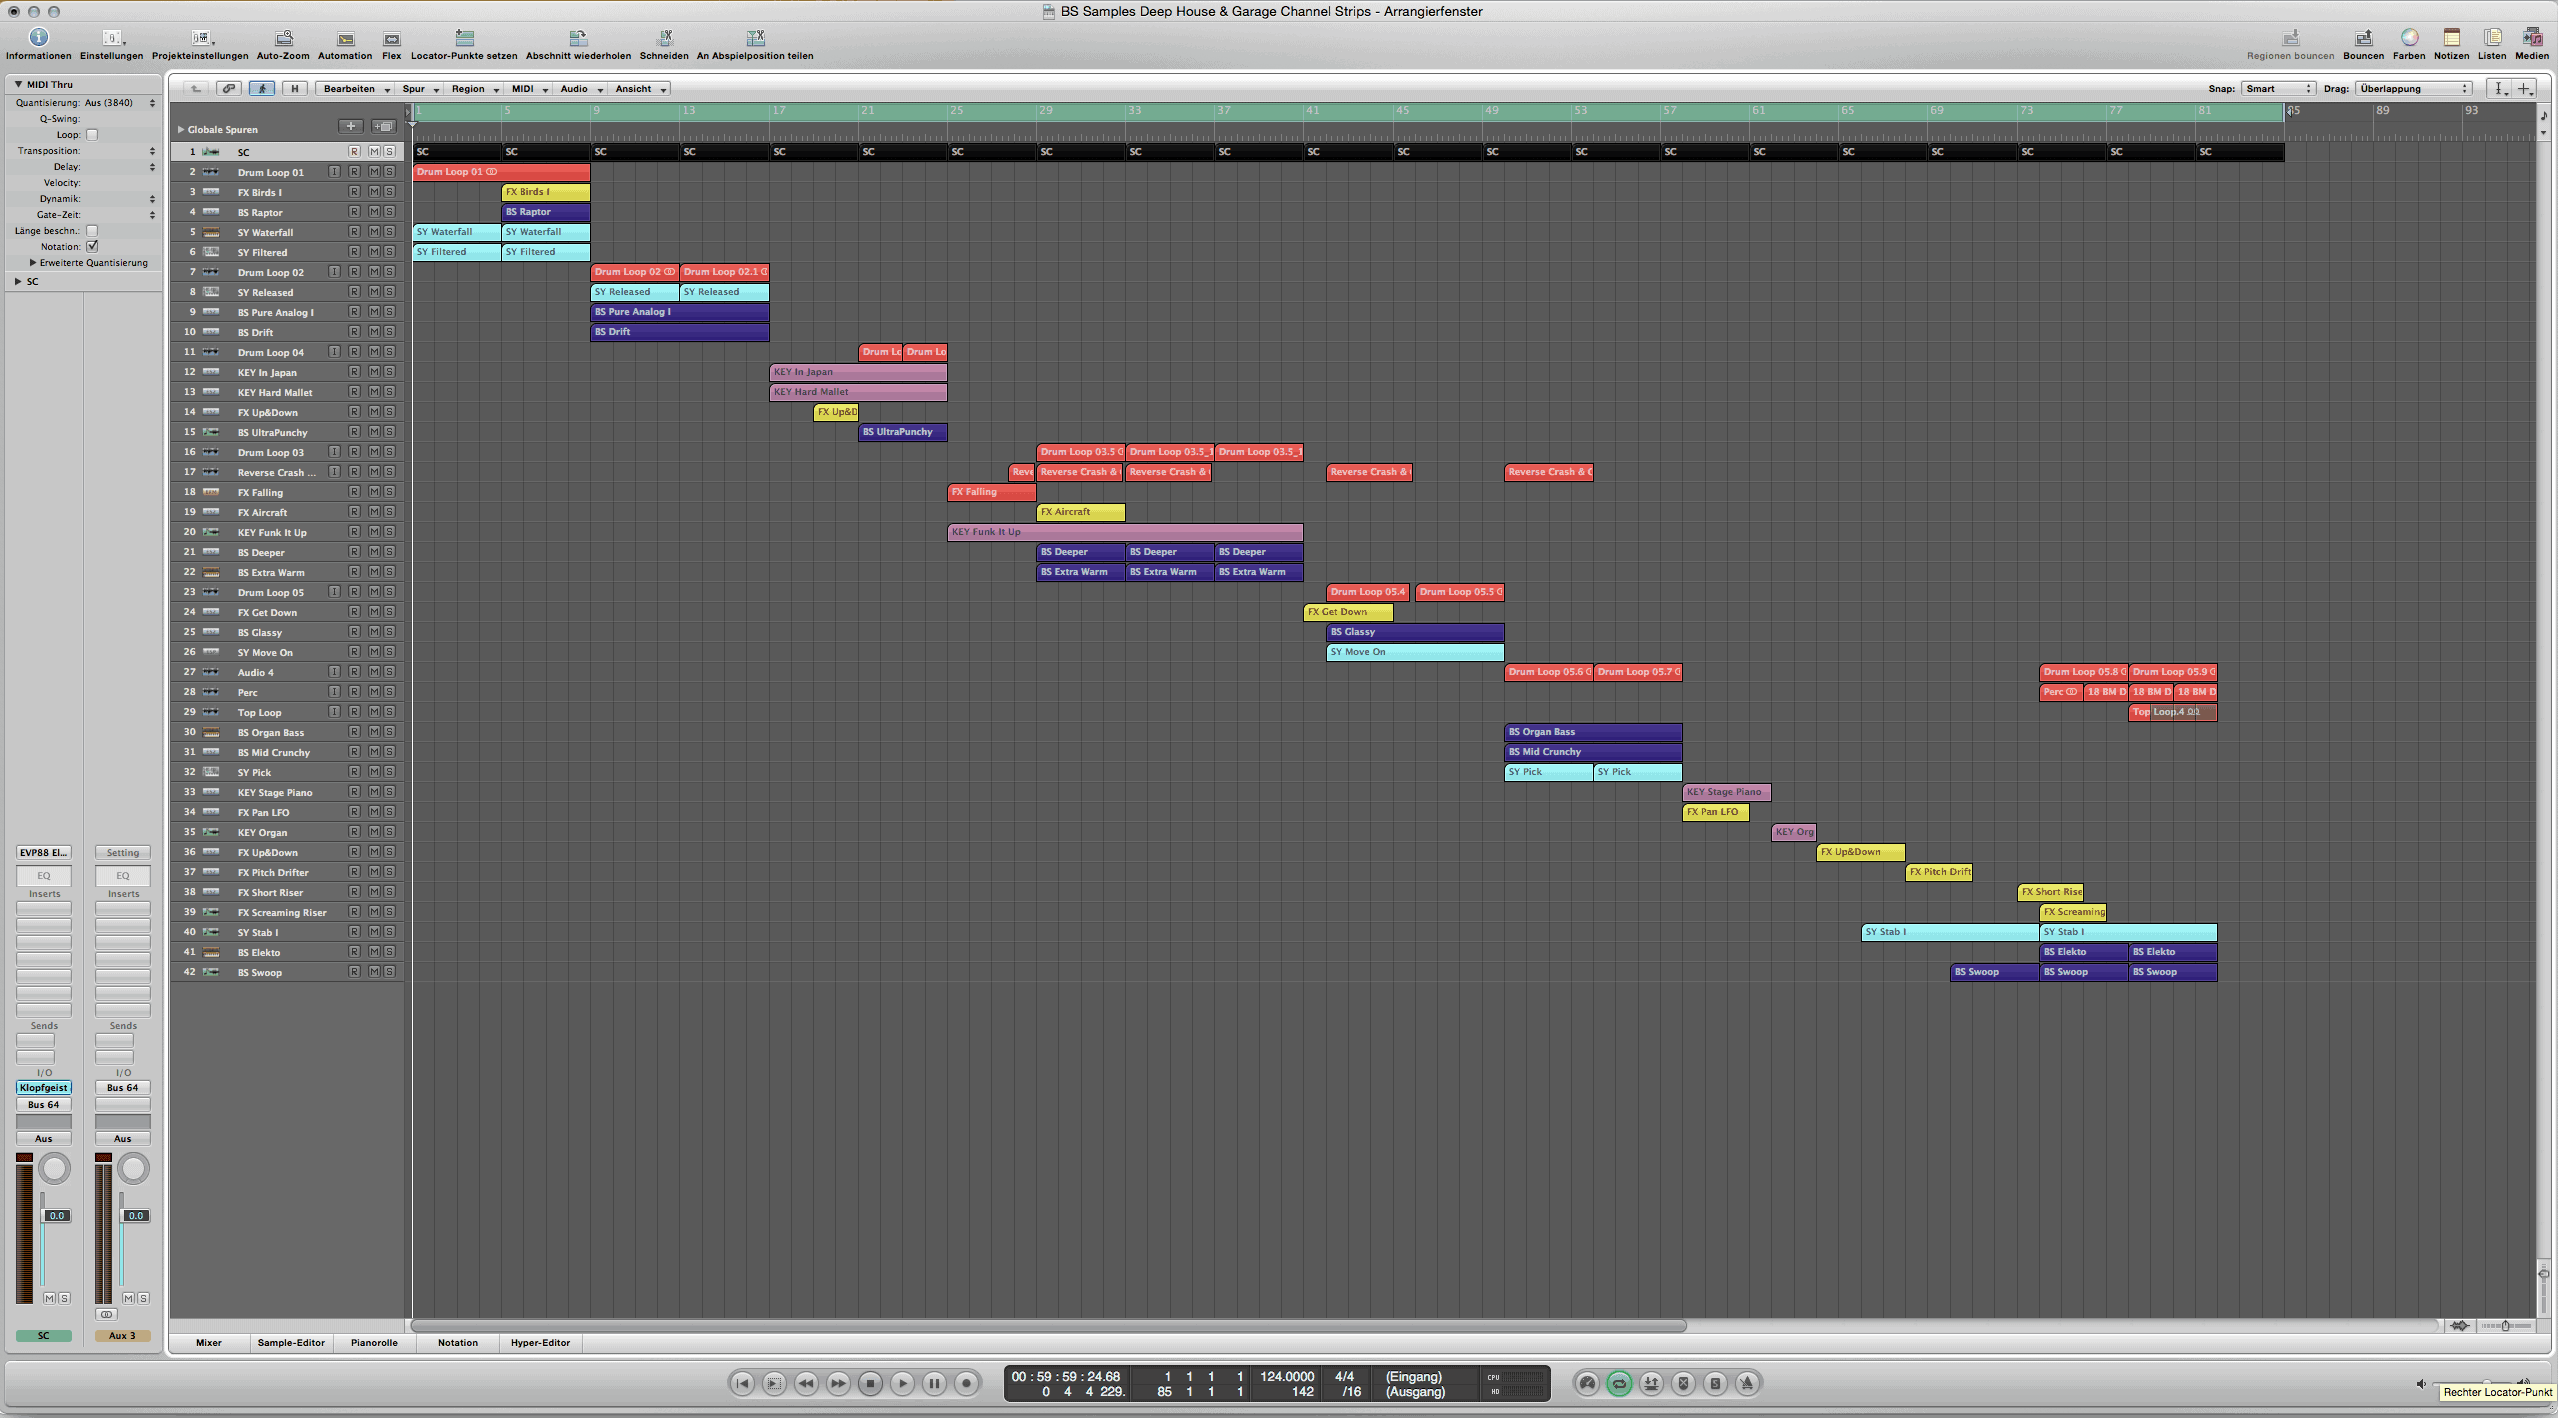 BS Samples Deep House & Garage Channel Strips (Logic 9 project)